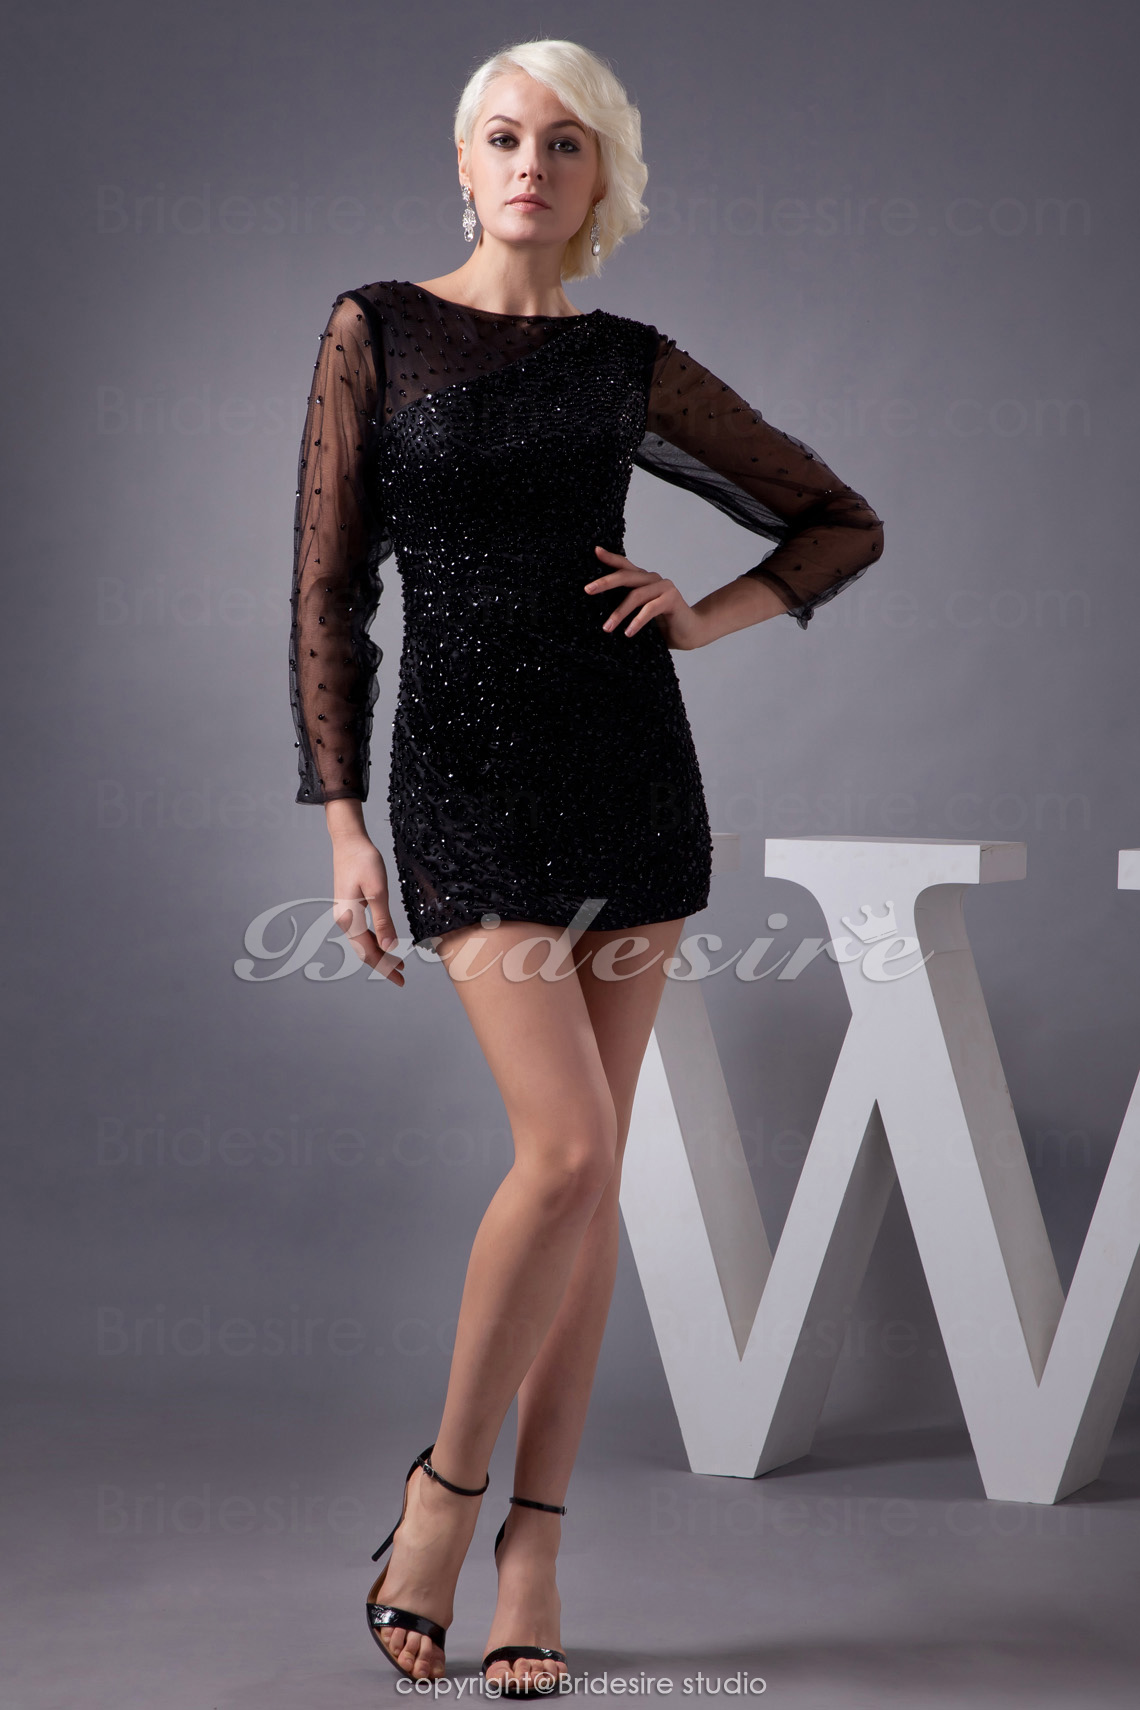 Sheath/Column Jewel Short/Mini Long Sleeve Lace Dress